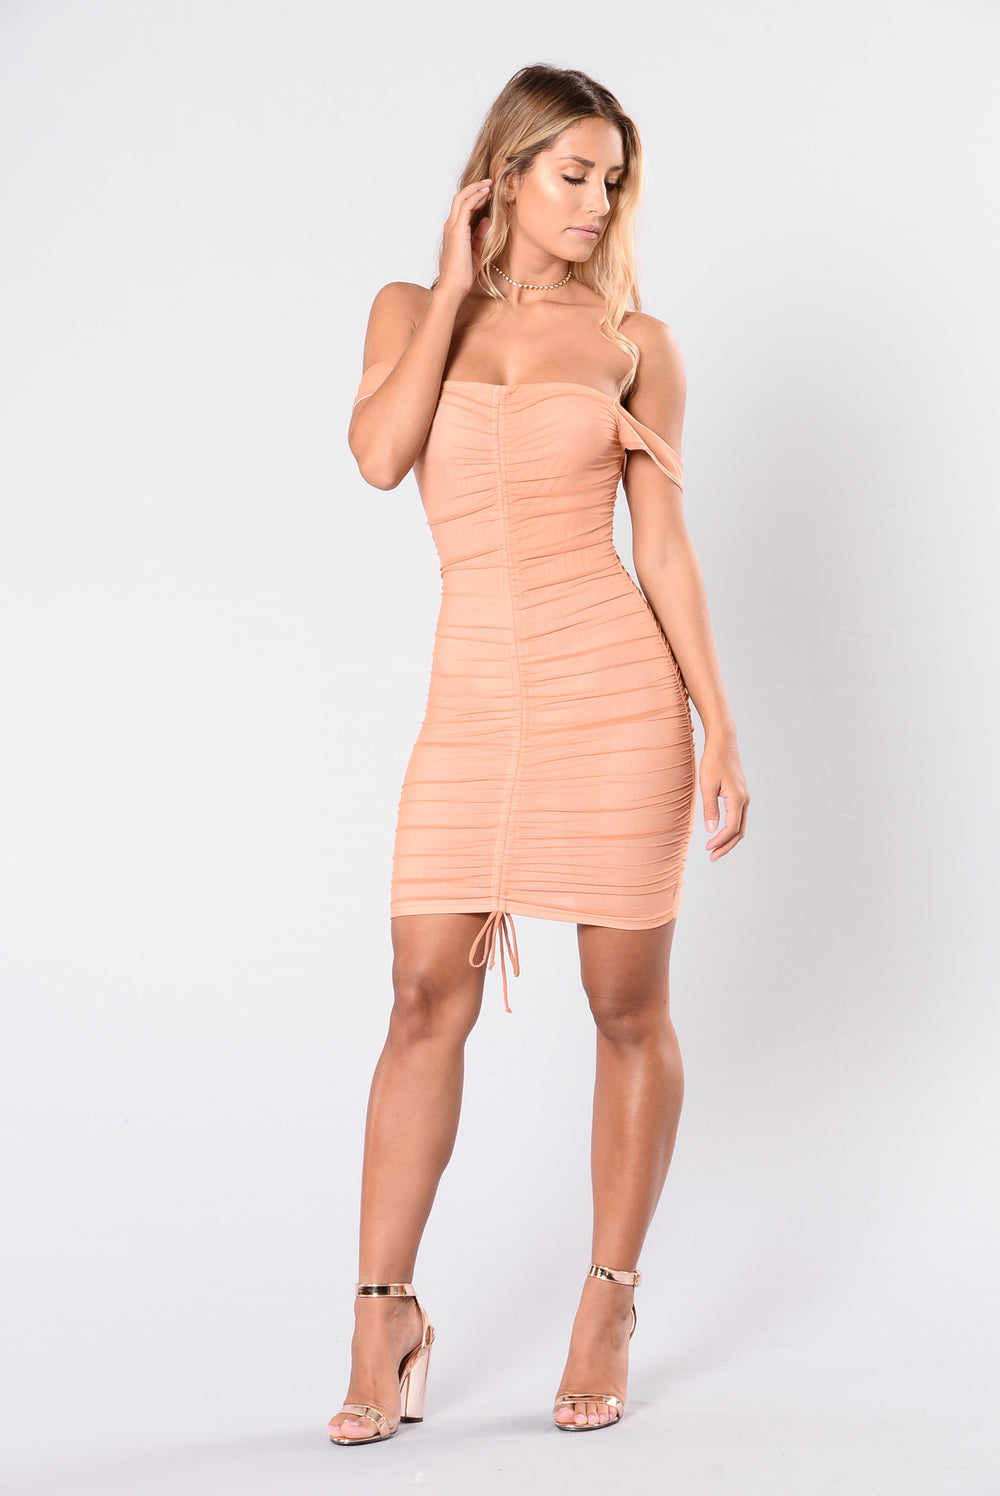 Blush Pink Dress What Color Shoes